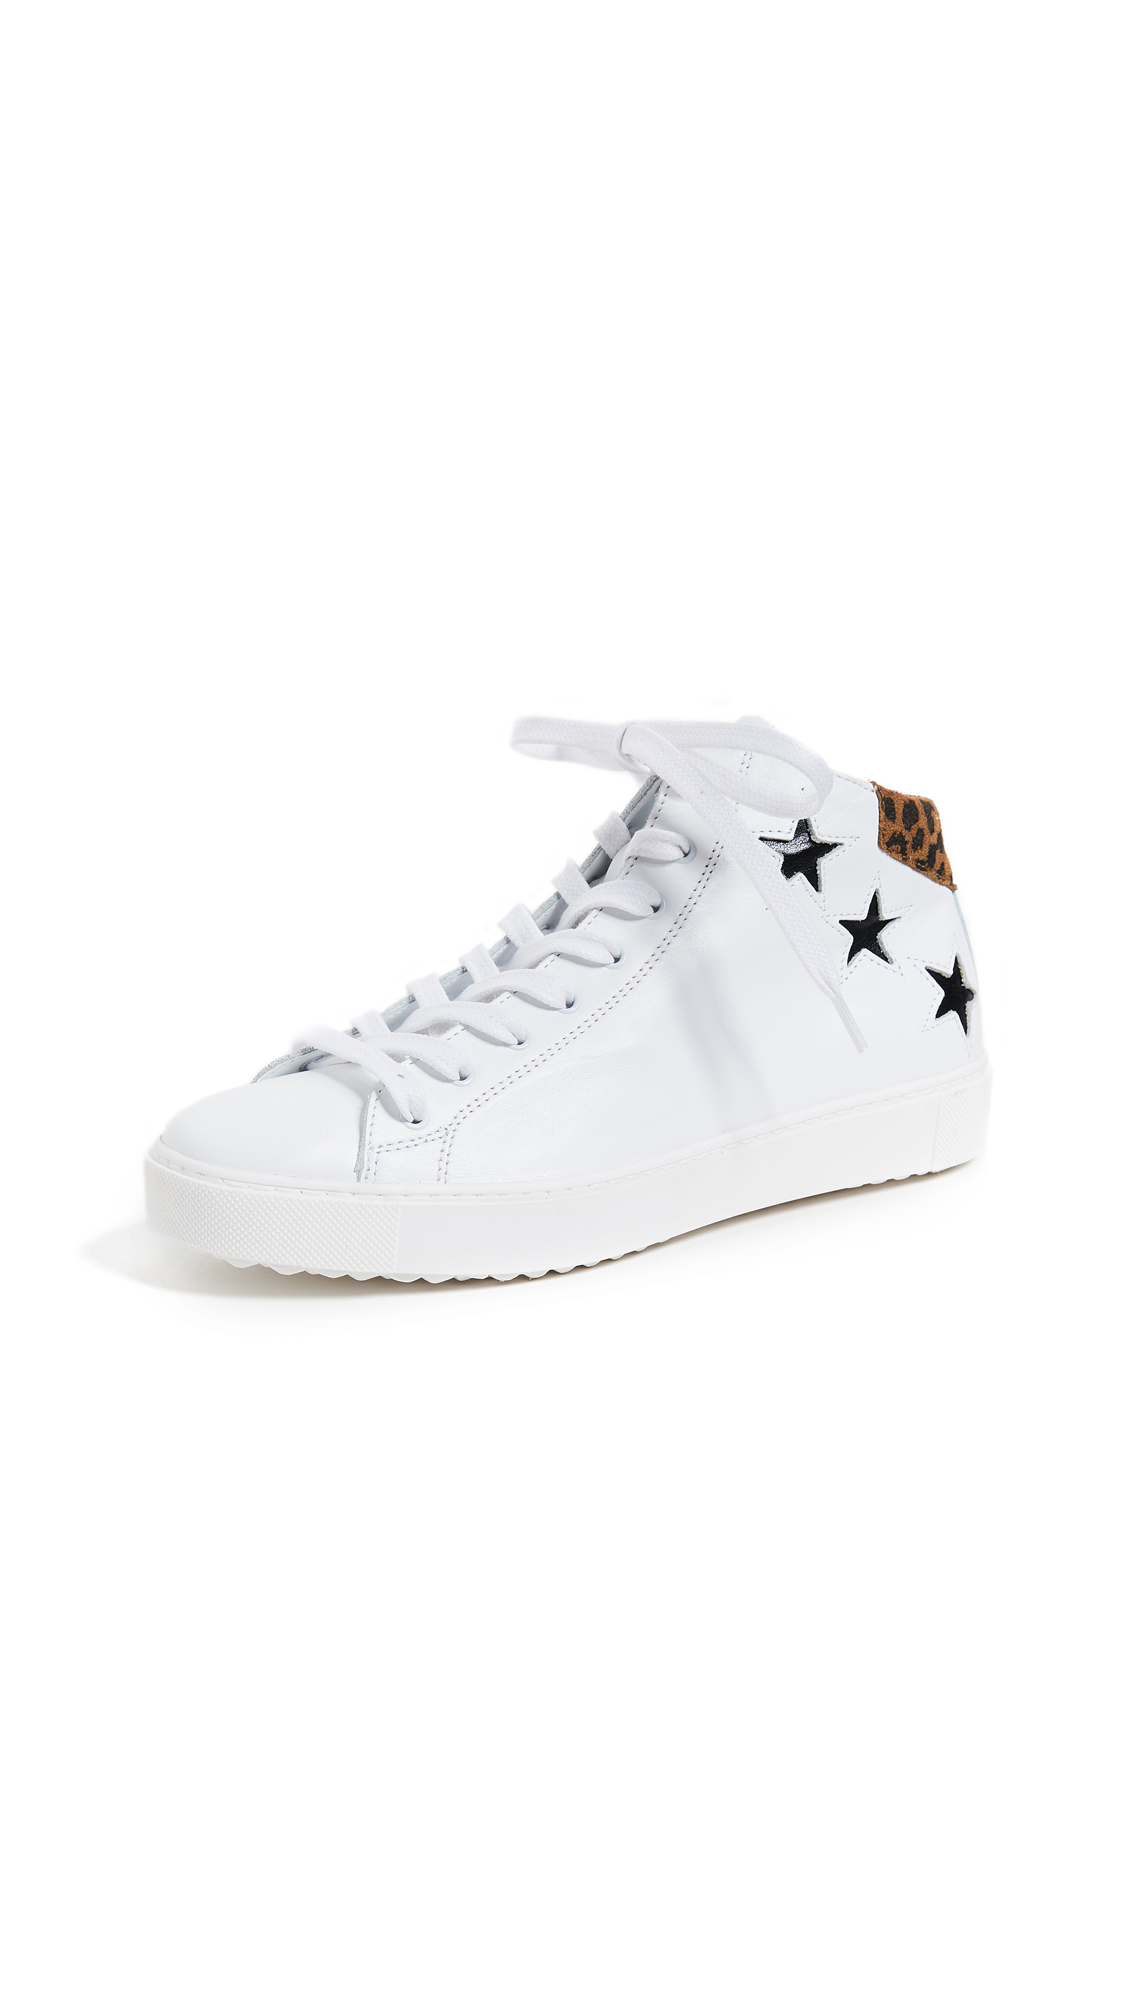 ONE by Superstar High Top Sneakers - White/Black